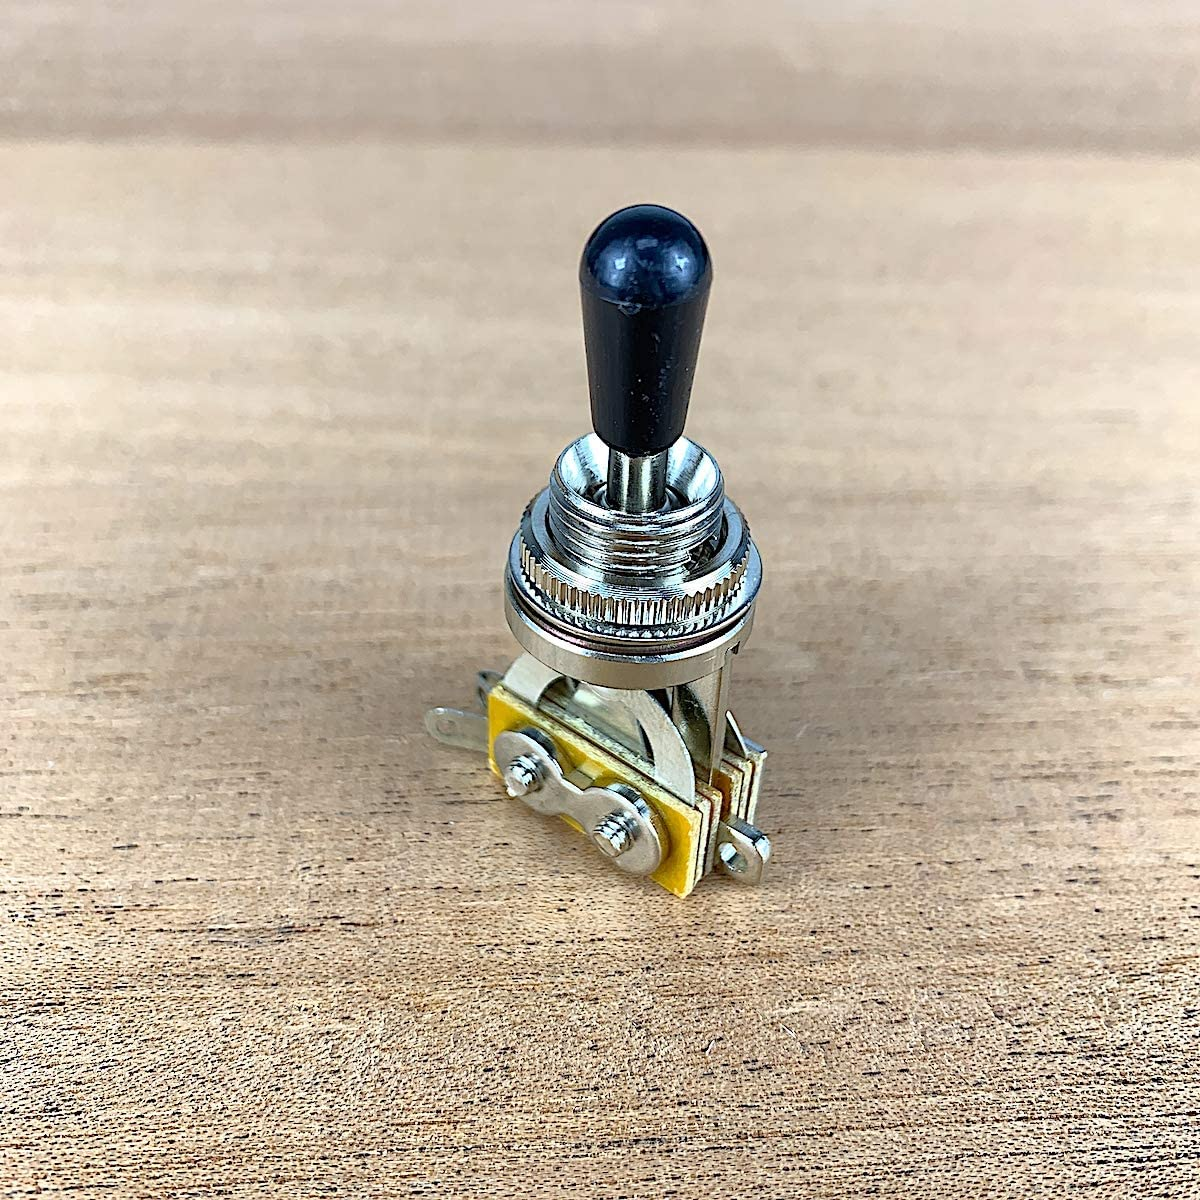 GTI Metric Toggle Switch For Les Paul Style Guitars 3 Position - Chrome- GP-TSC